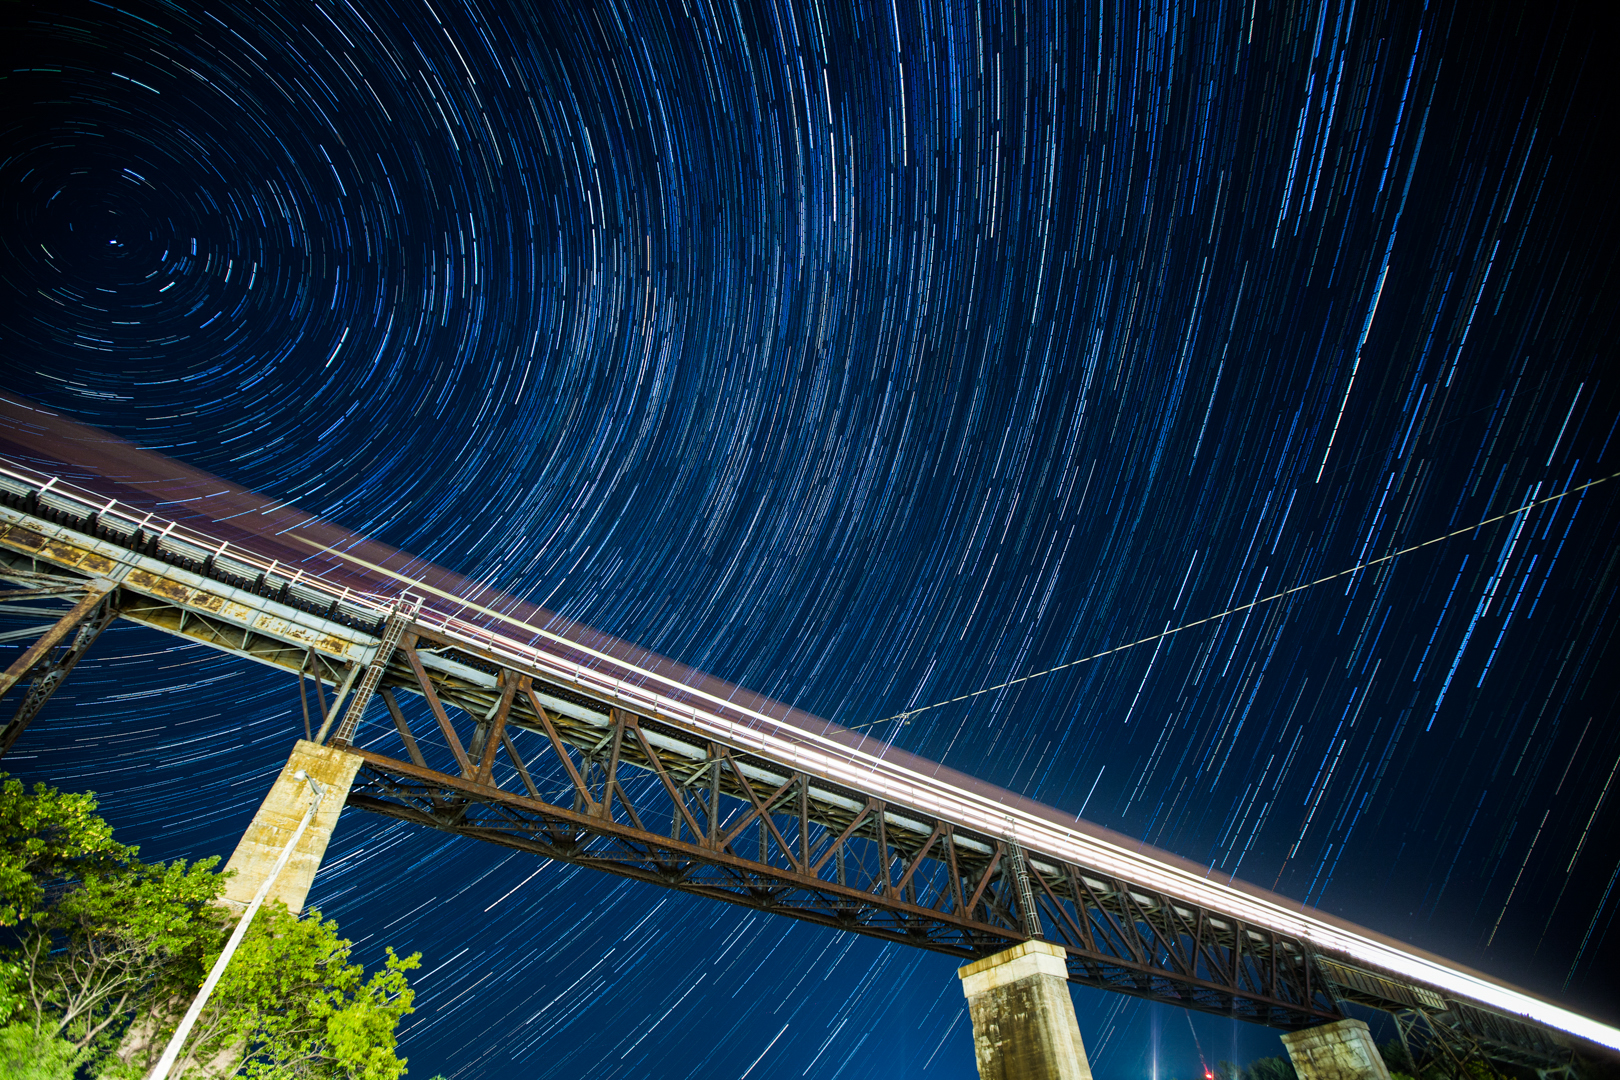 Star Trails over the Train and CPR Trestle